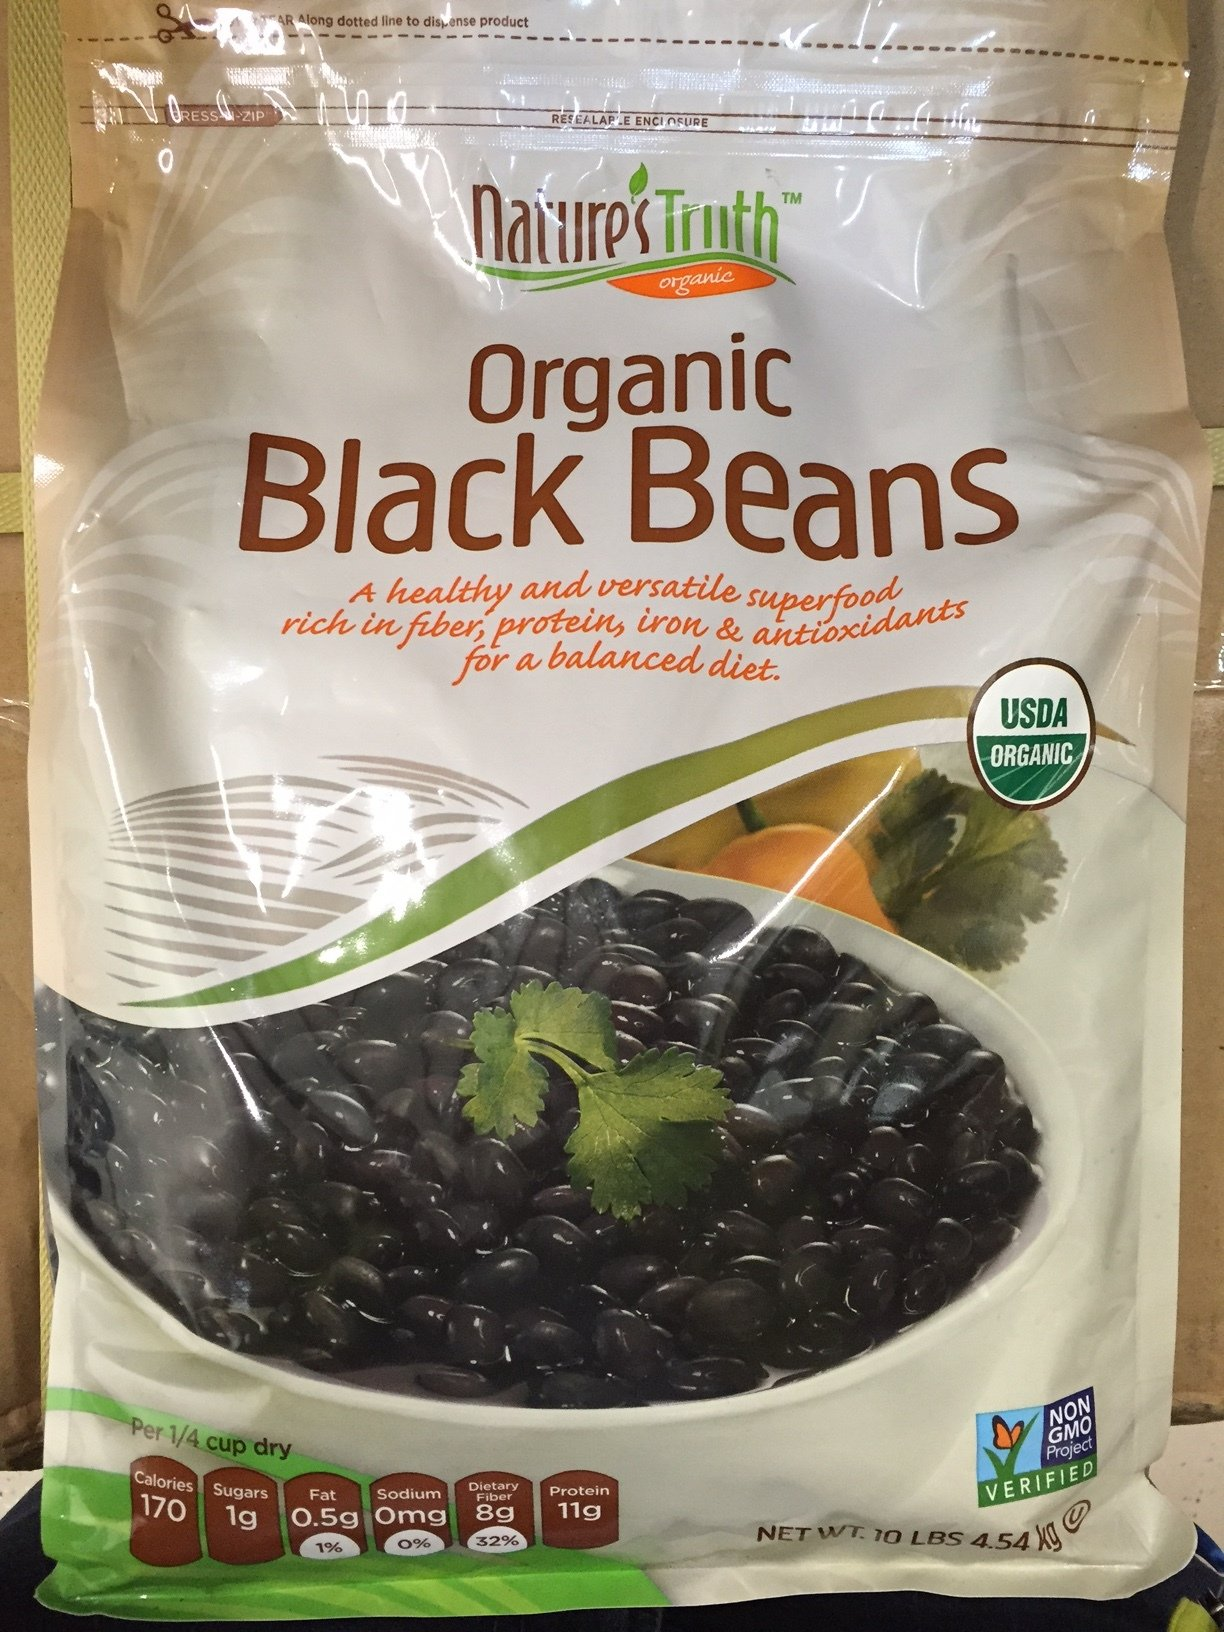 NATURE'S TRUTH ORGANIC BLACK BEANS 10 LBS BAG by Nature's Truth